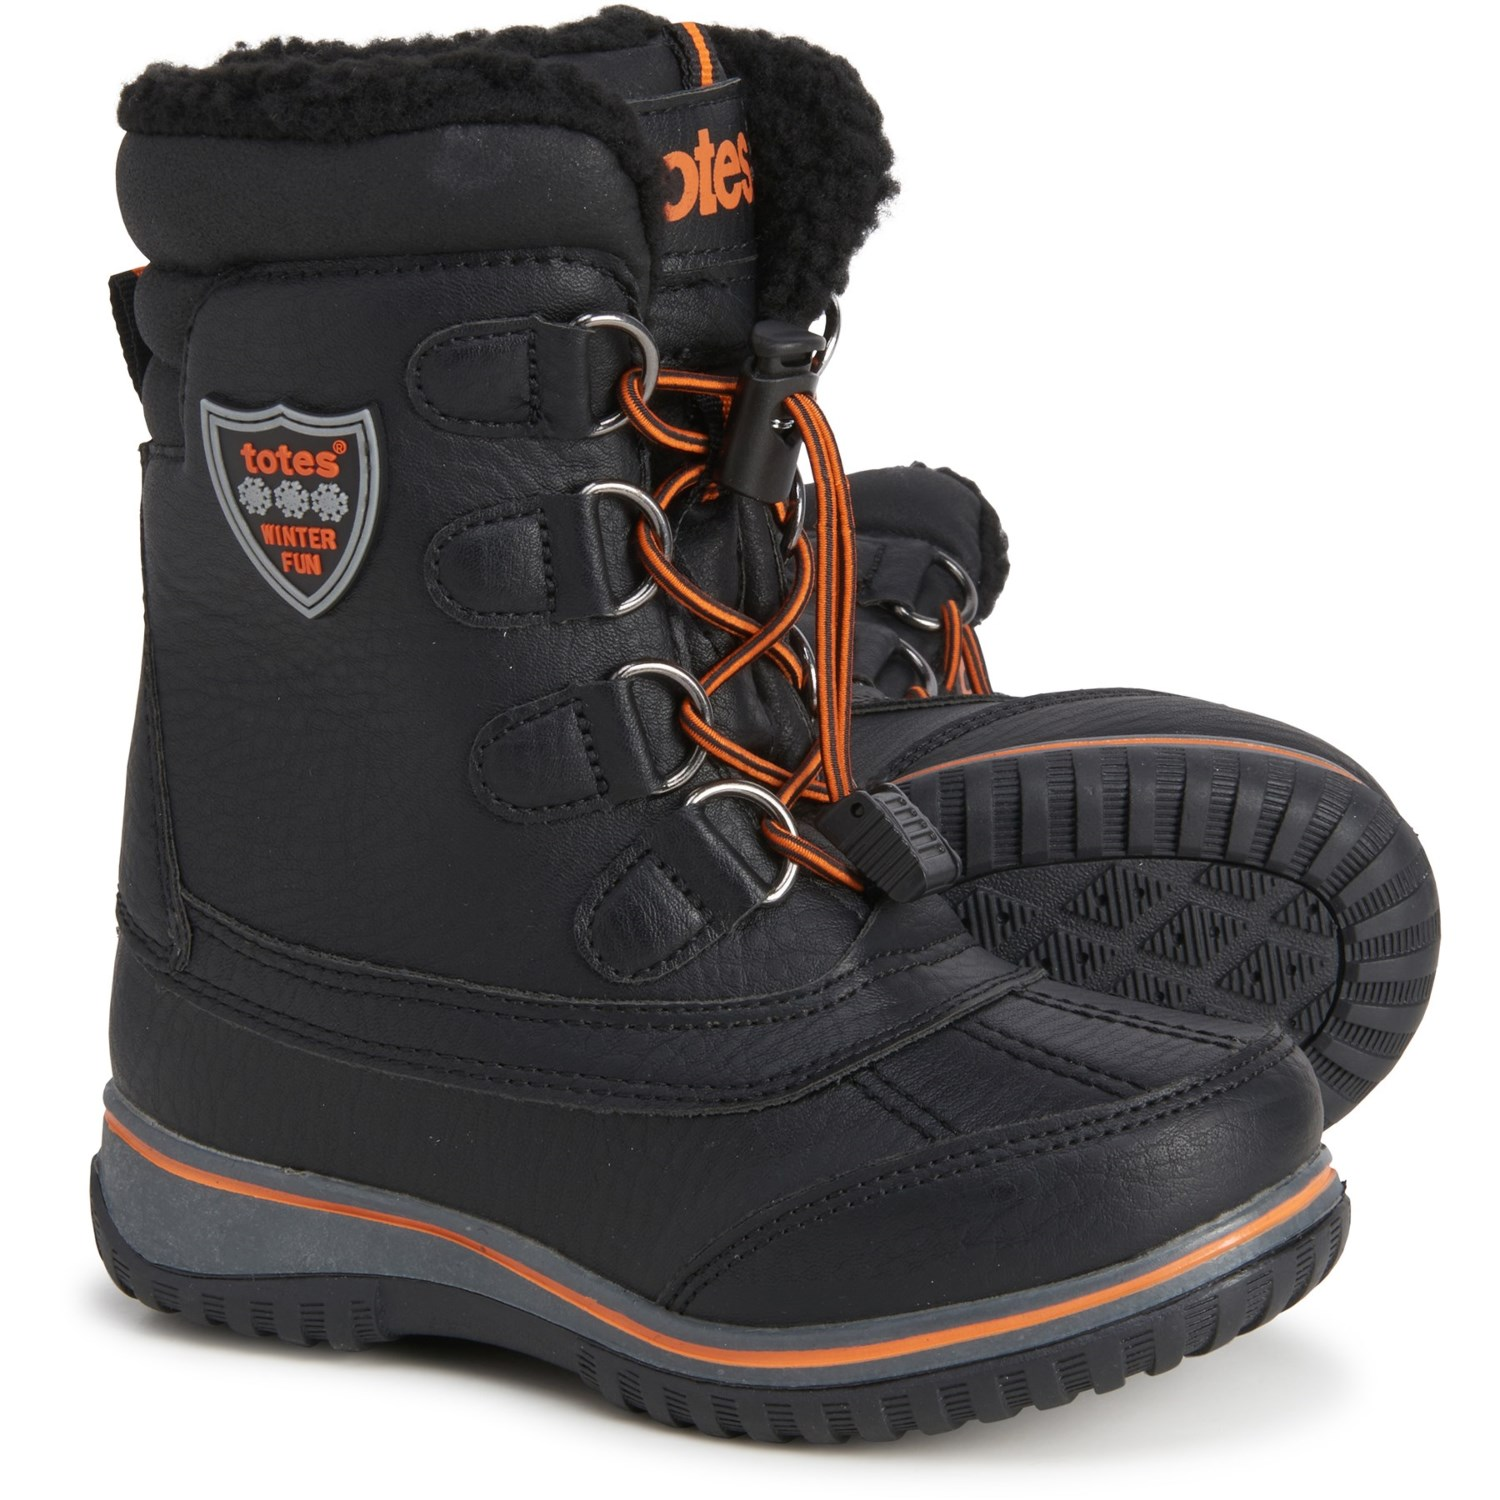 totes Noah Snow Boots (For Boys) - Save 40%